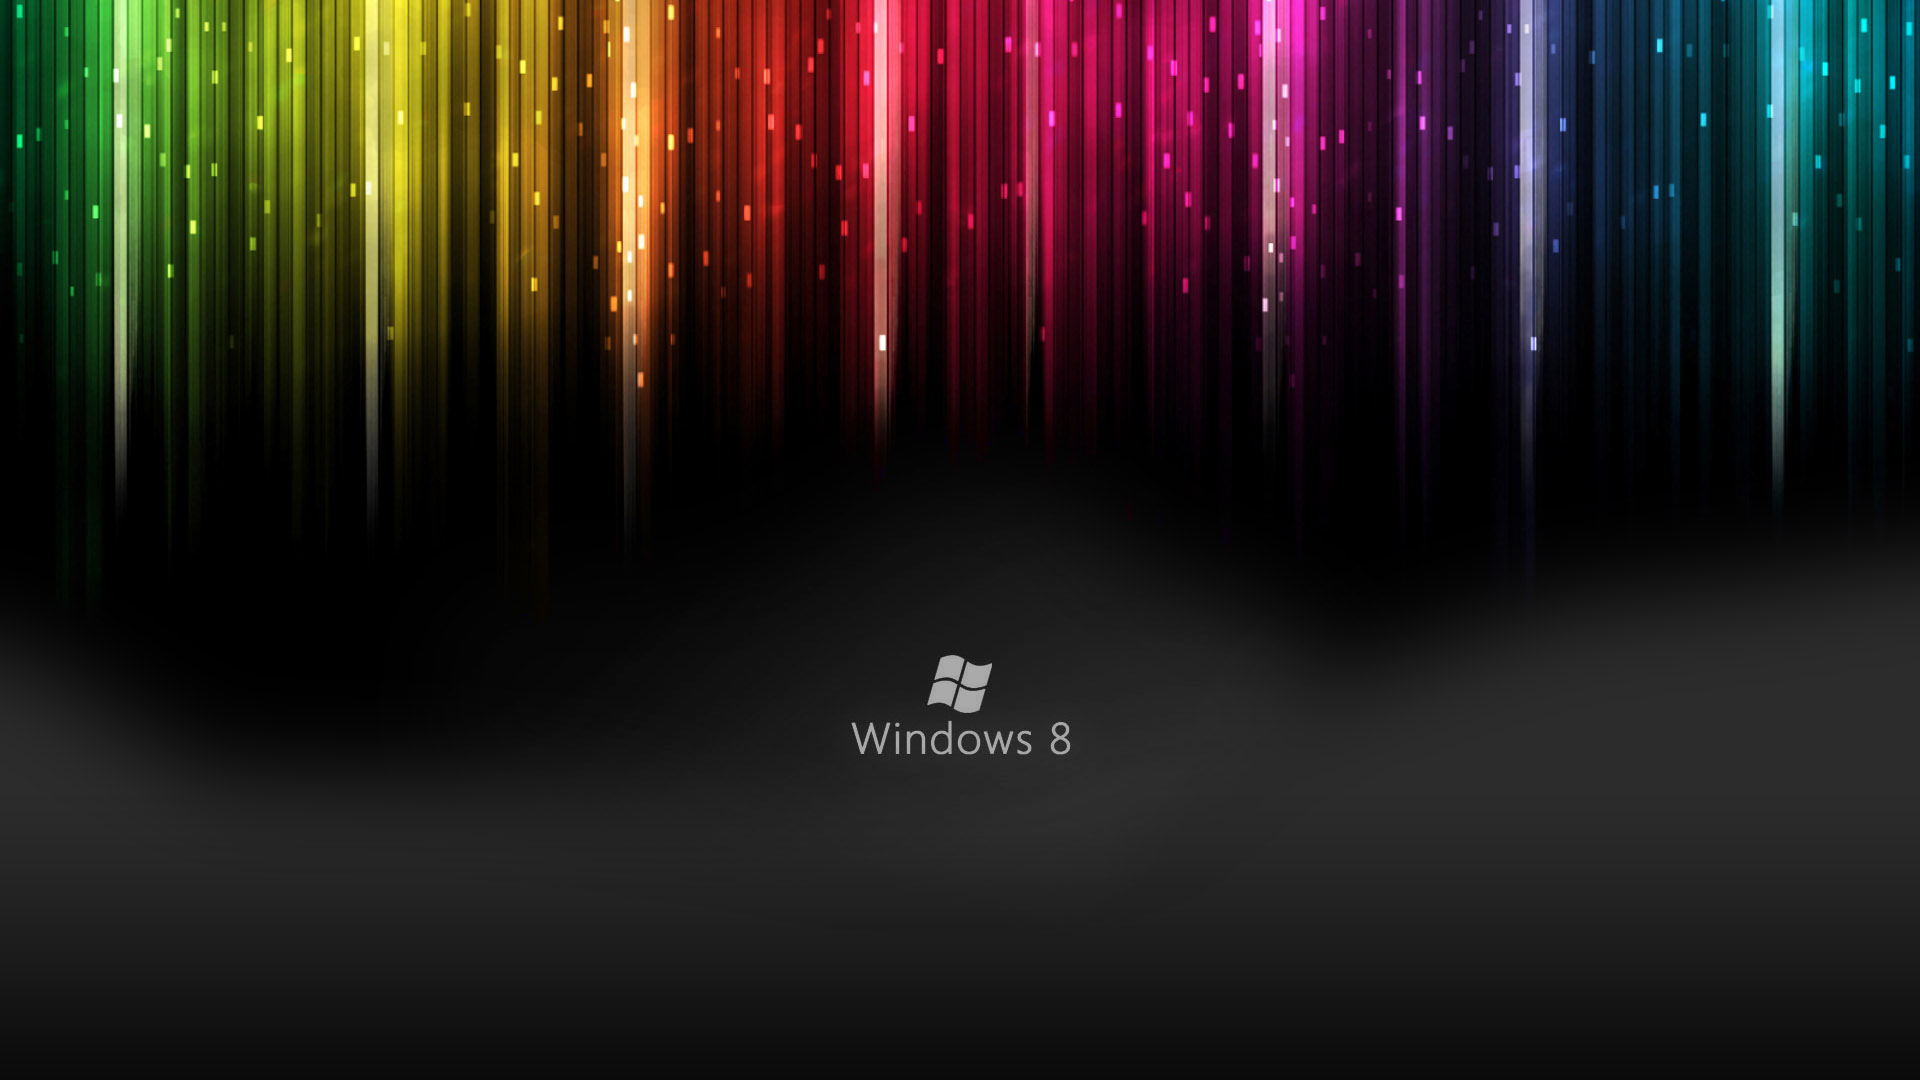 Live Wallpaper Windows 8